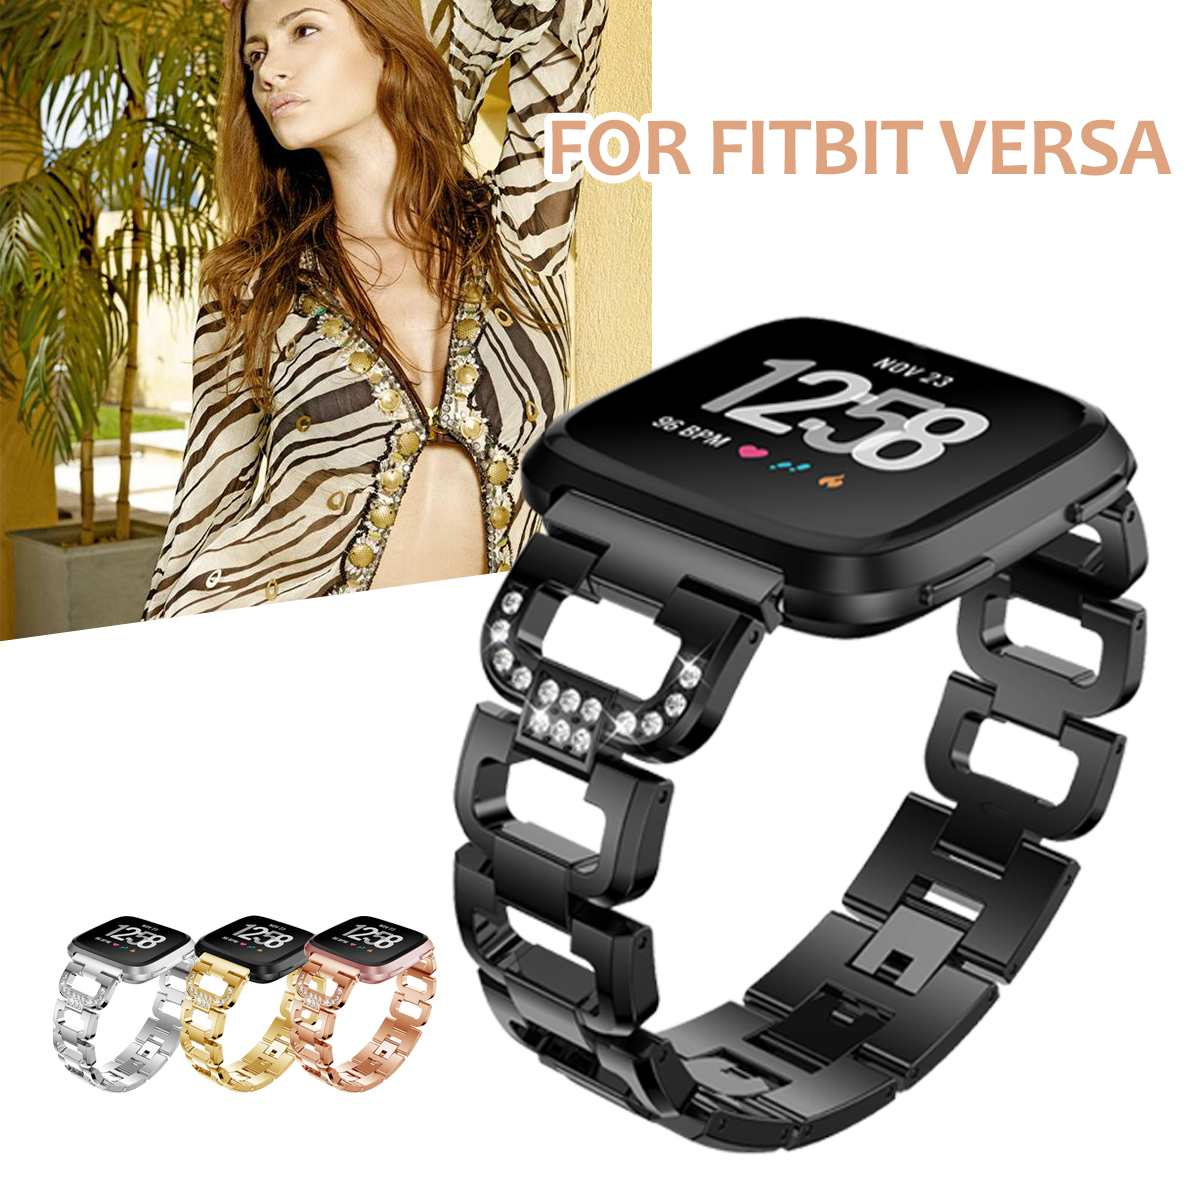 Luxury Crystal Bling Smart Watch Bands Accessories Replace for Fitbit Versa Band Stainless Steel Strap Wristbands Metal Bracelet